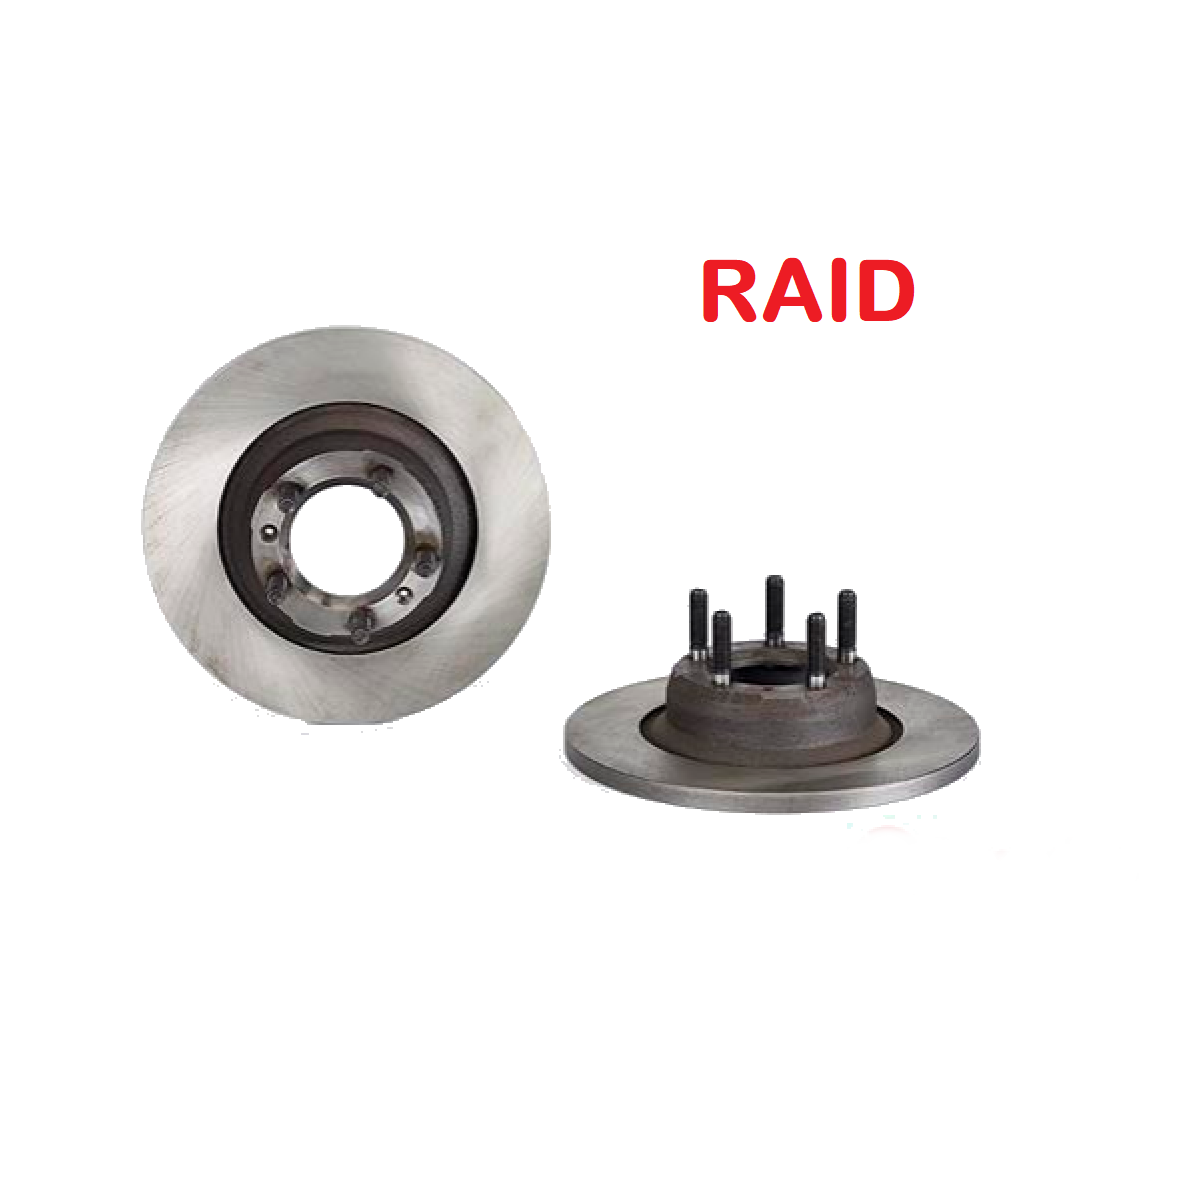 PAIR FRONT BRAKE DISCS ALFA ROMEO 75 - 90 2.4TD RAID FOR 60533595